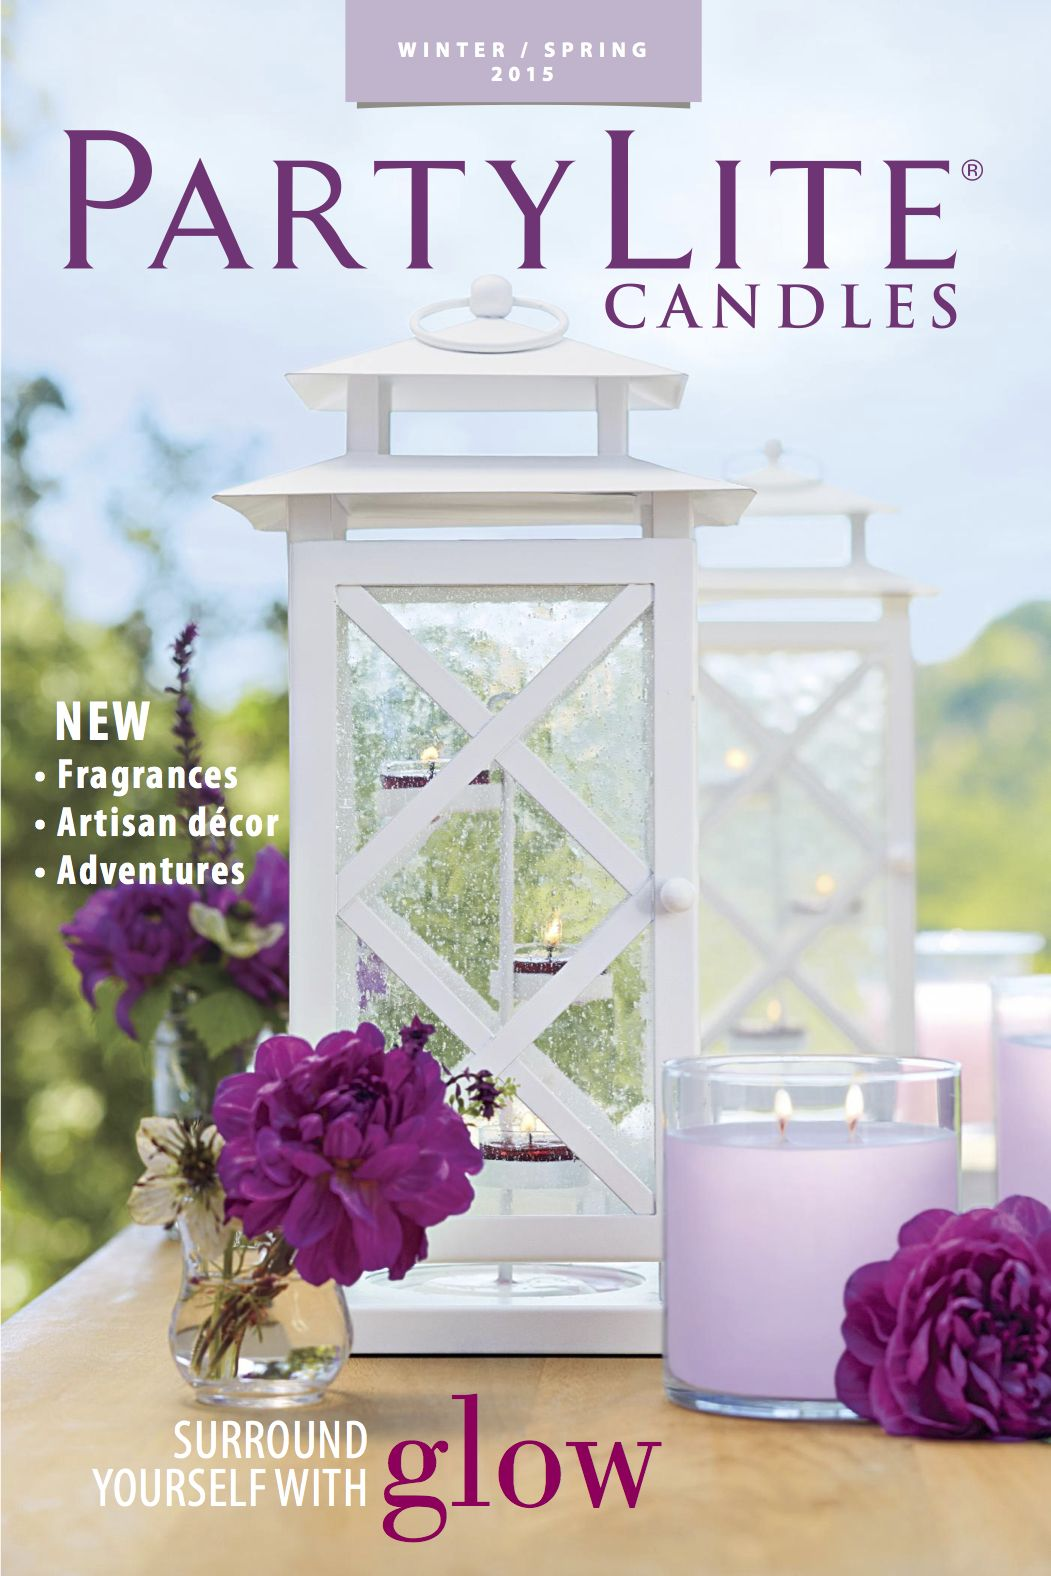 Winter/Spring 2014 catalog is here! Shop online or at a Party.